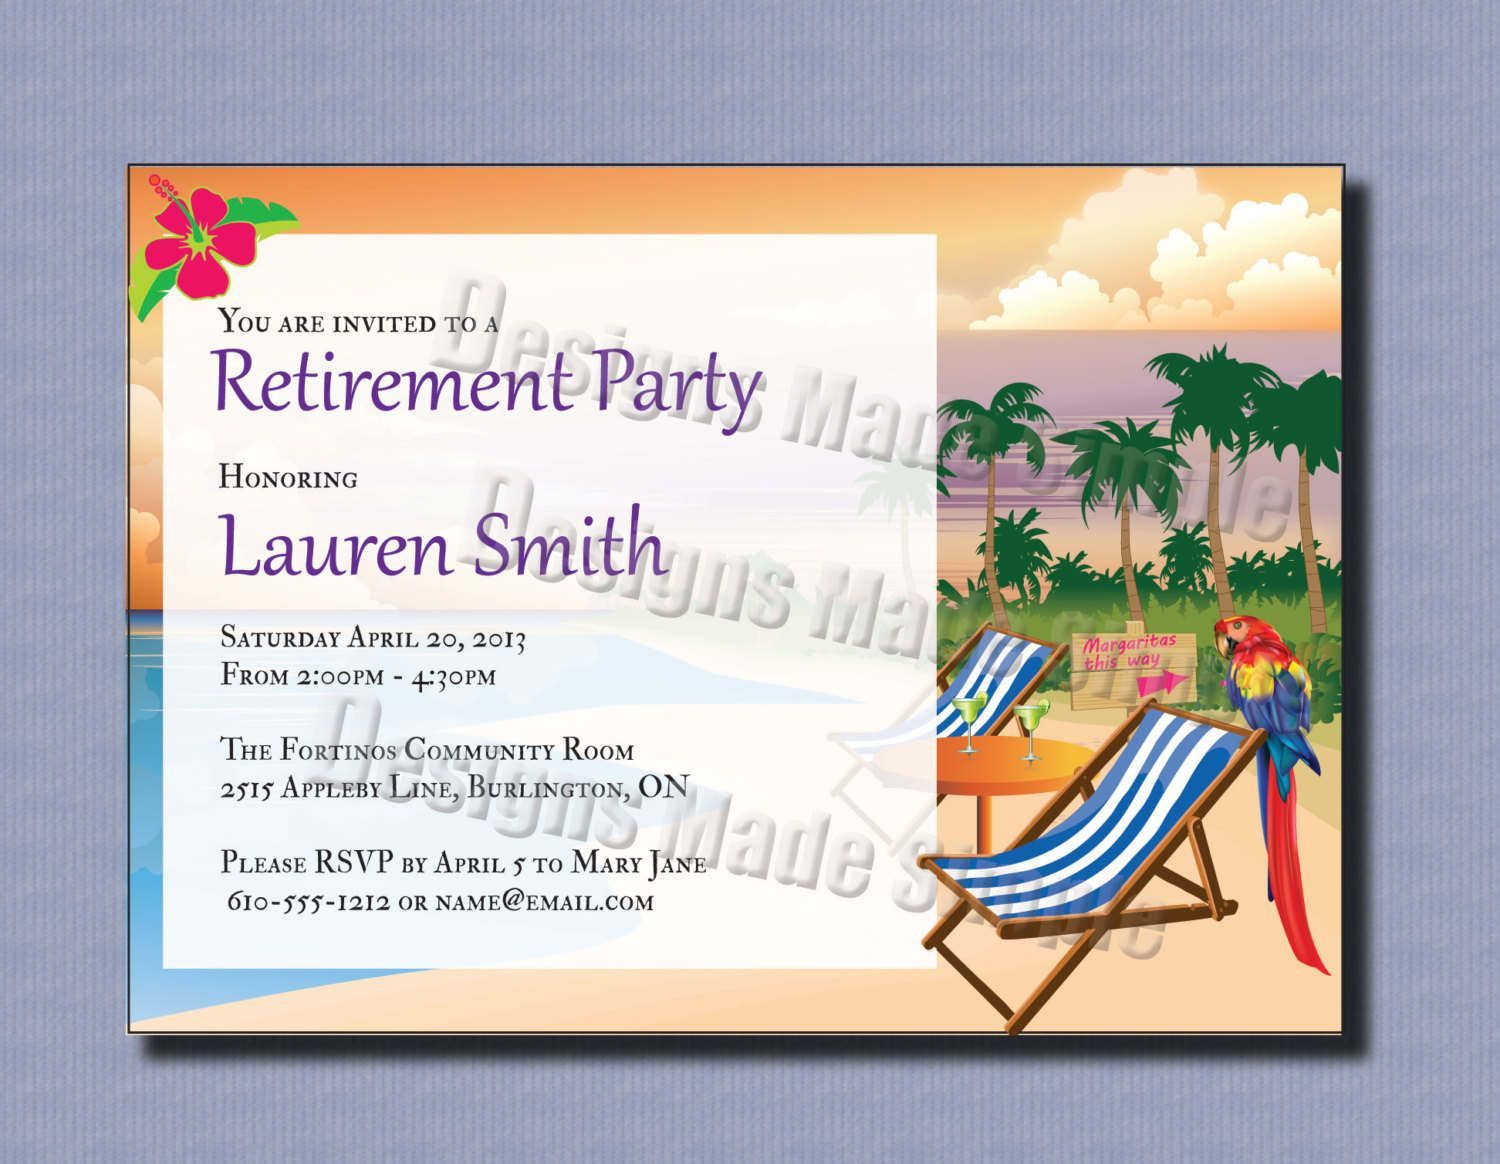 000 Outstanding Retirement Party Invitation Template Picture  Templates For Free Nurse M WordFull